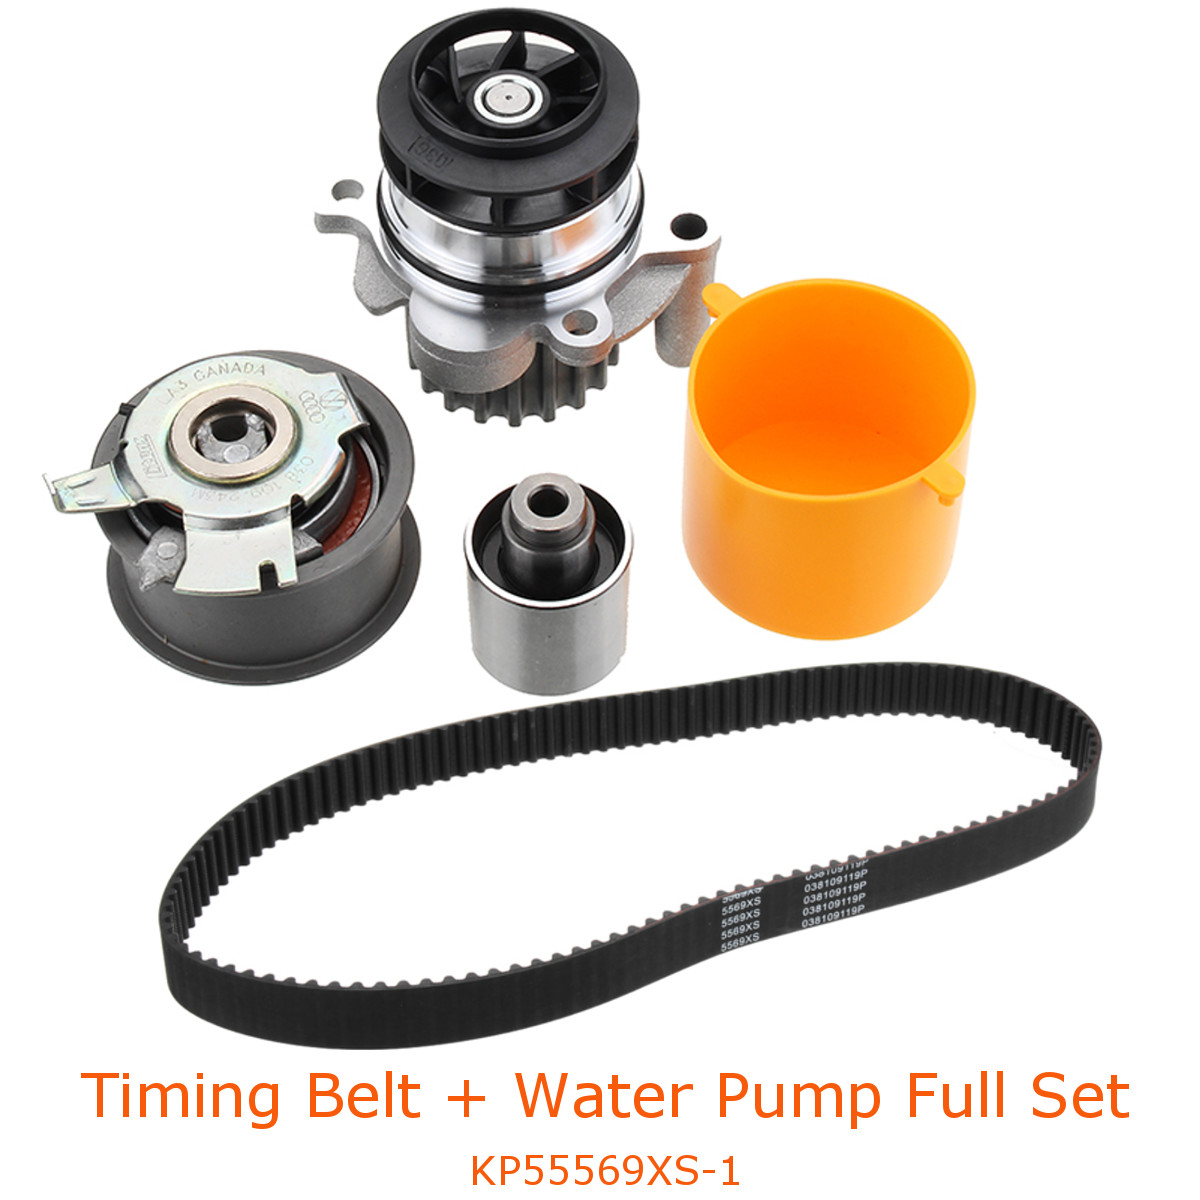 Timing Belt Kit Water Pump Set KP55569XS-1 For Audi A3 A4 VW TDI Golf For Skoda For Ford